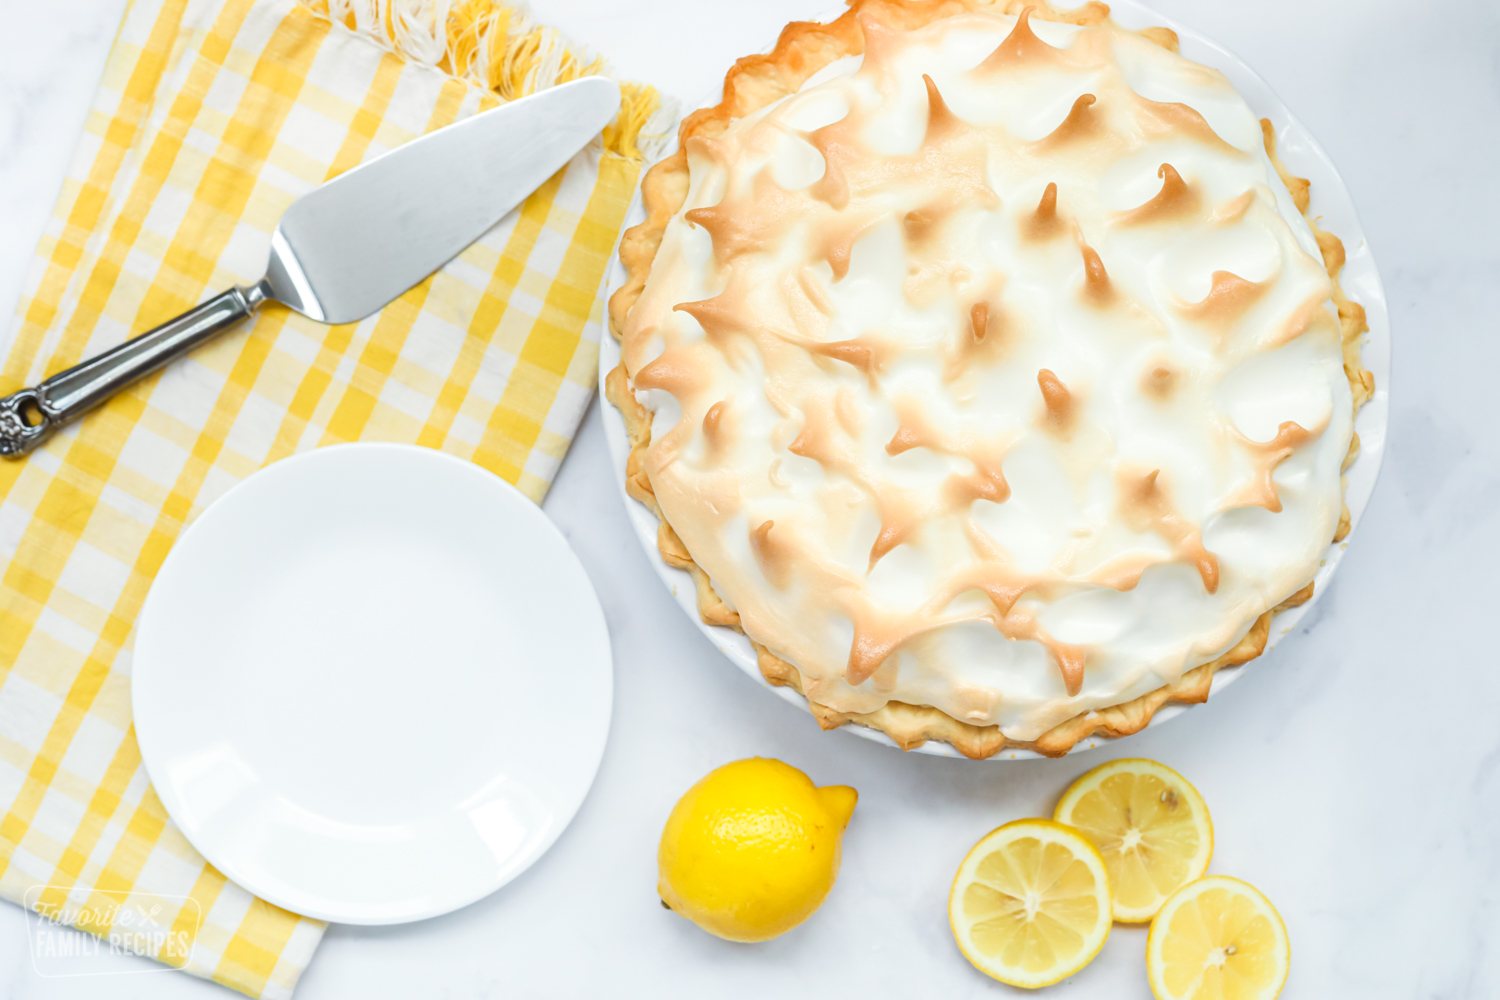 A top view of a whole lemon meringue pie next to a plate, a pie knife, and lemons.